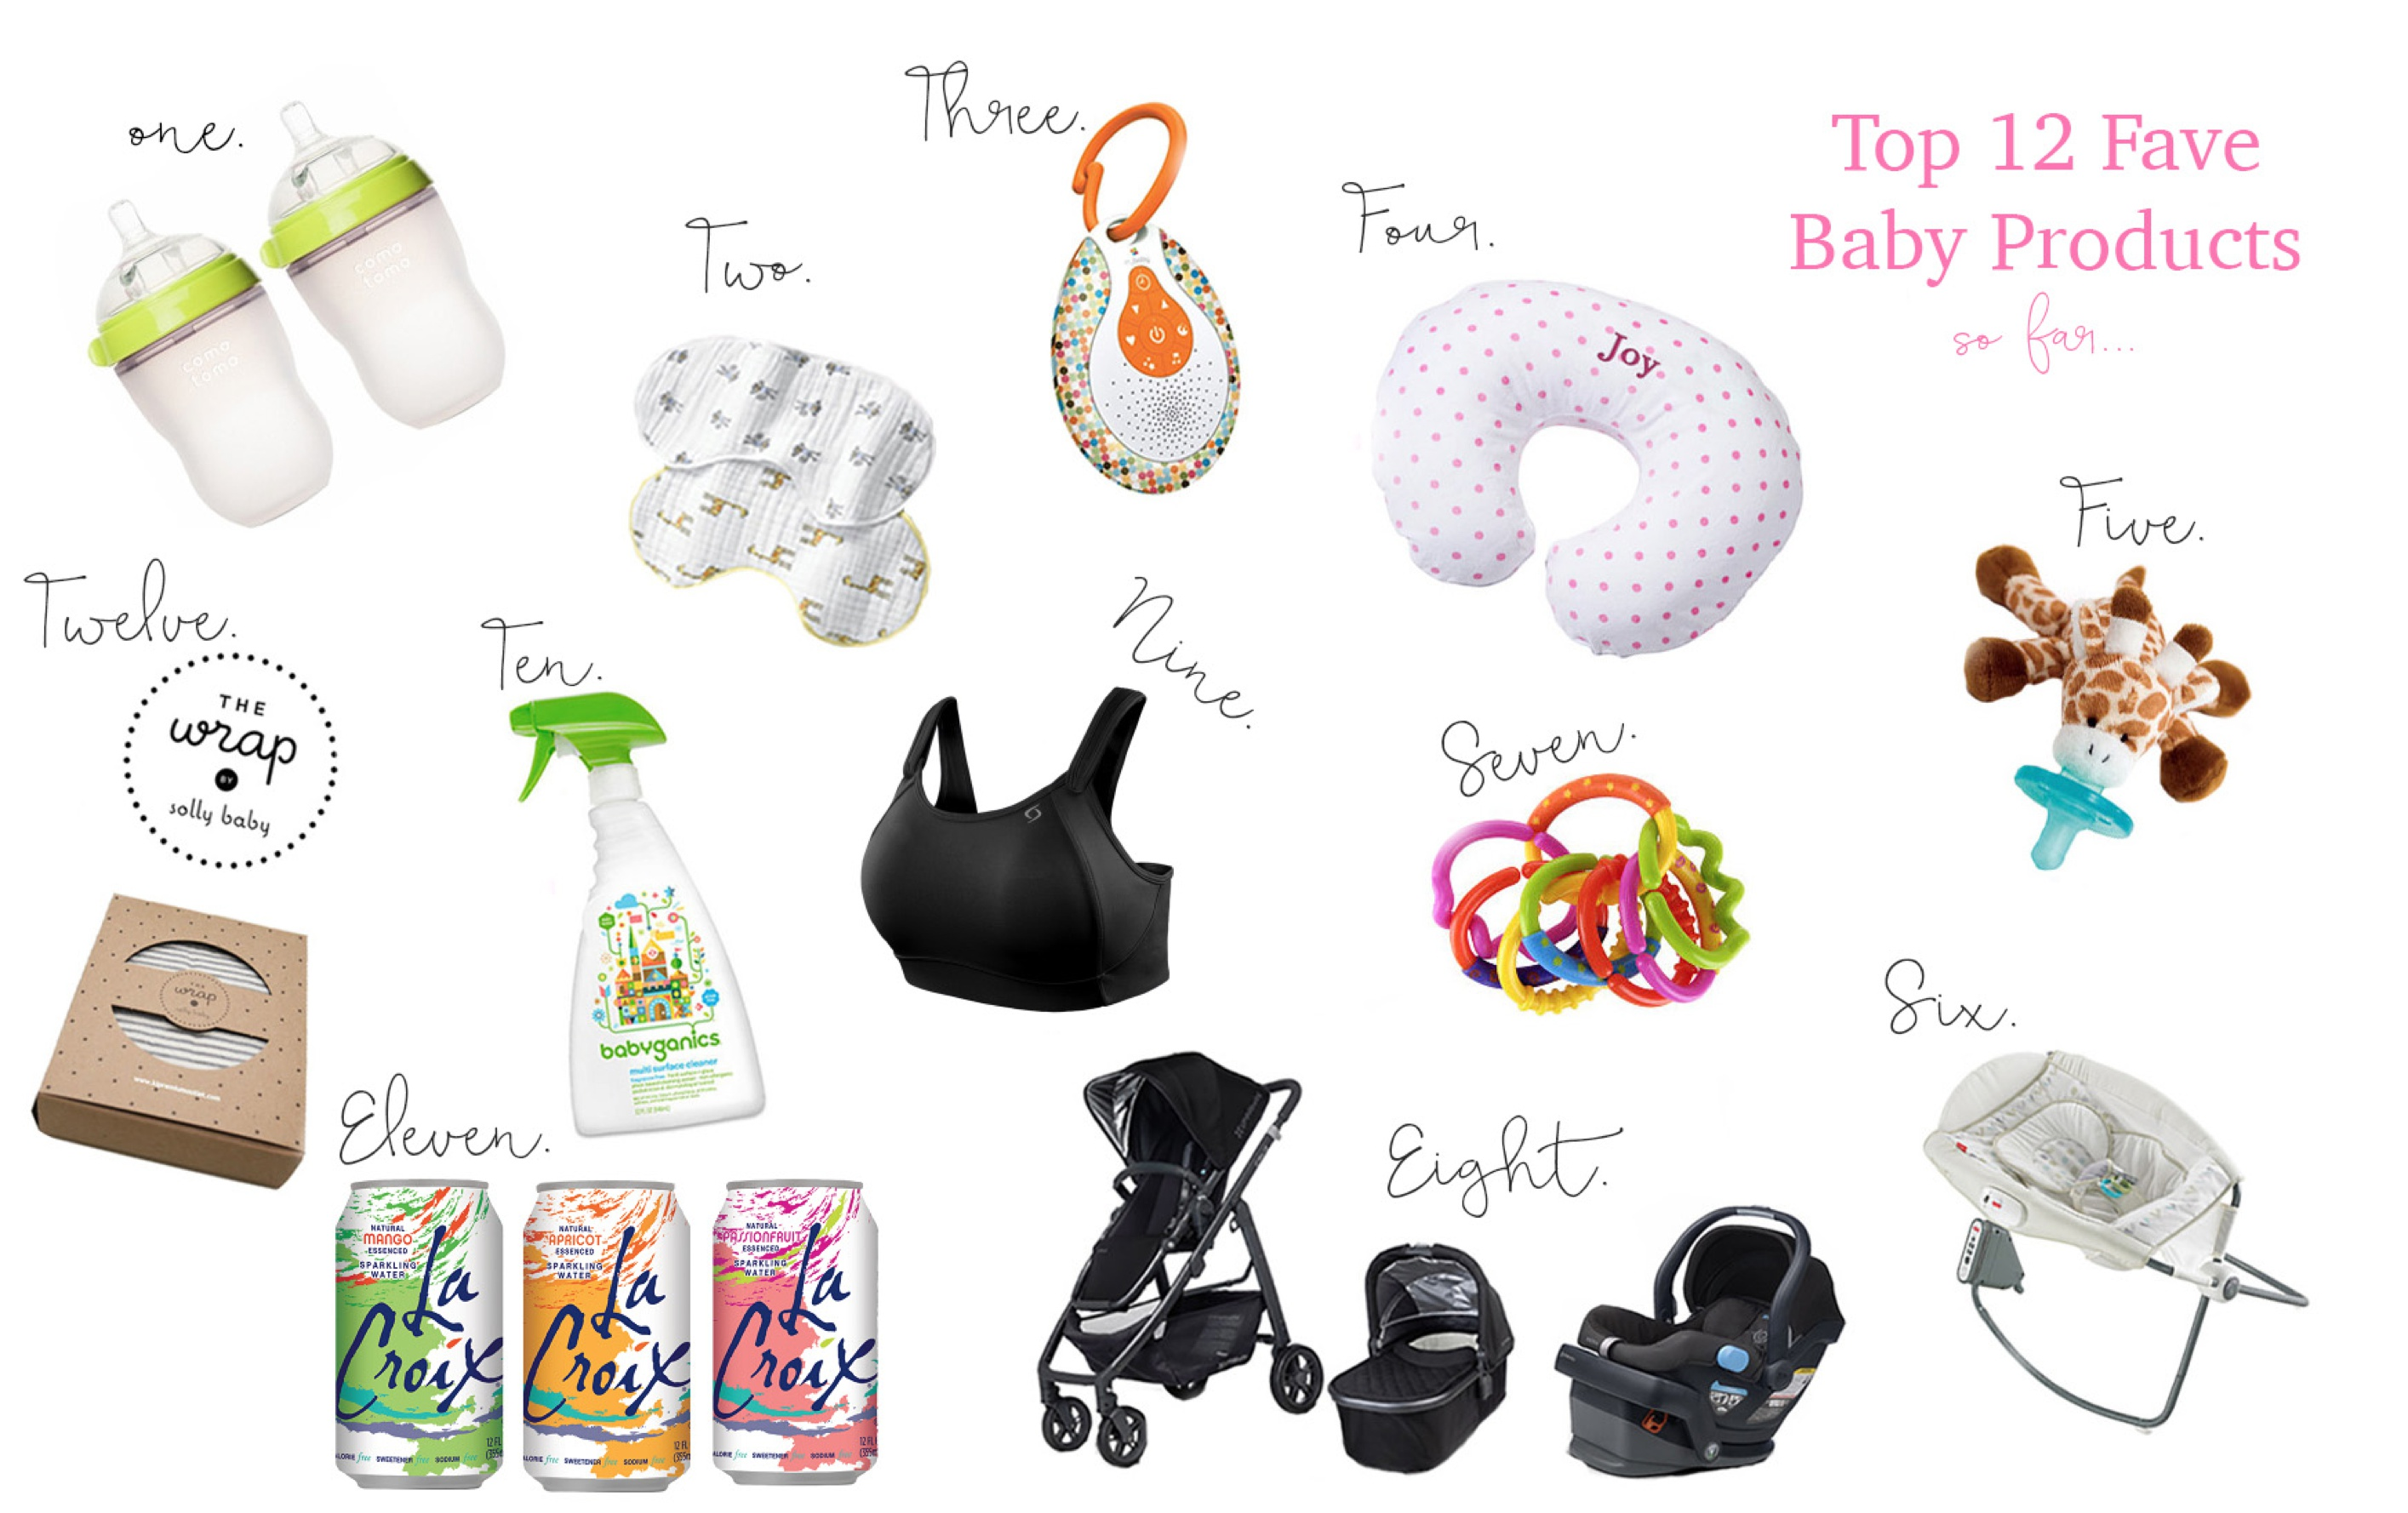 Top 12 Favorite Baby Products so far (@ 4 Mo)-- www.thenewmrsallen.com